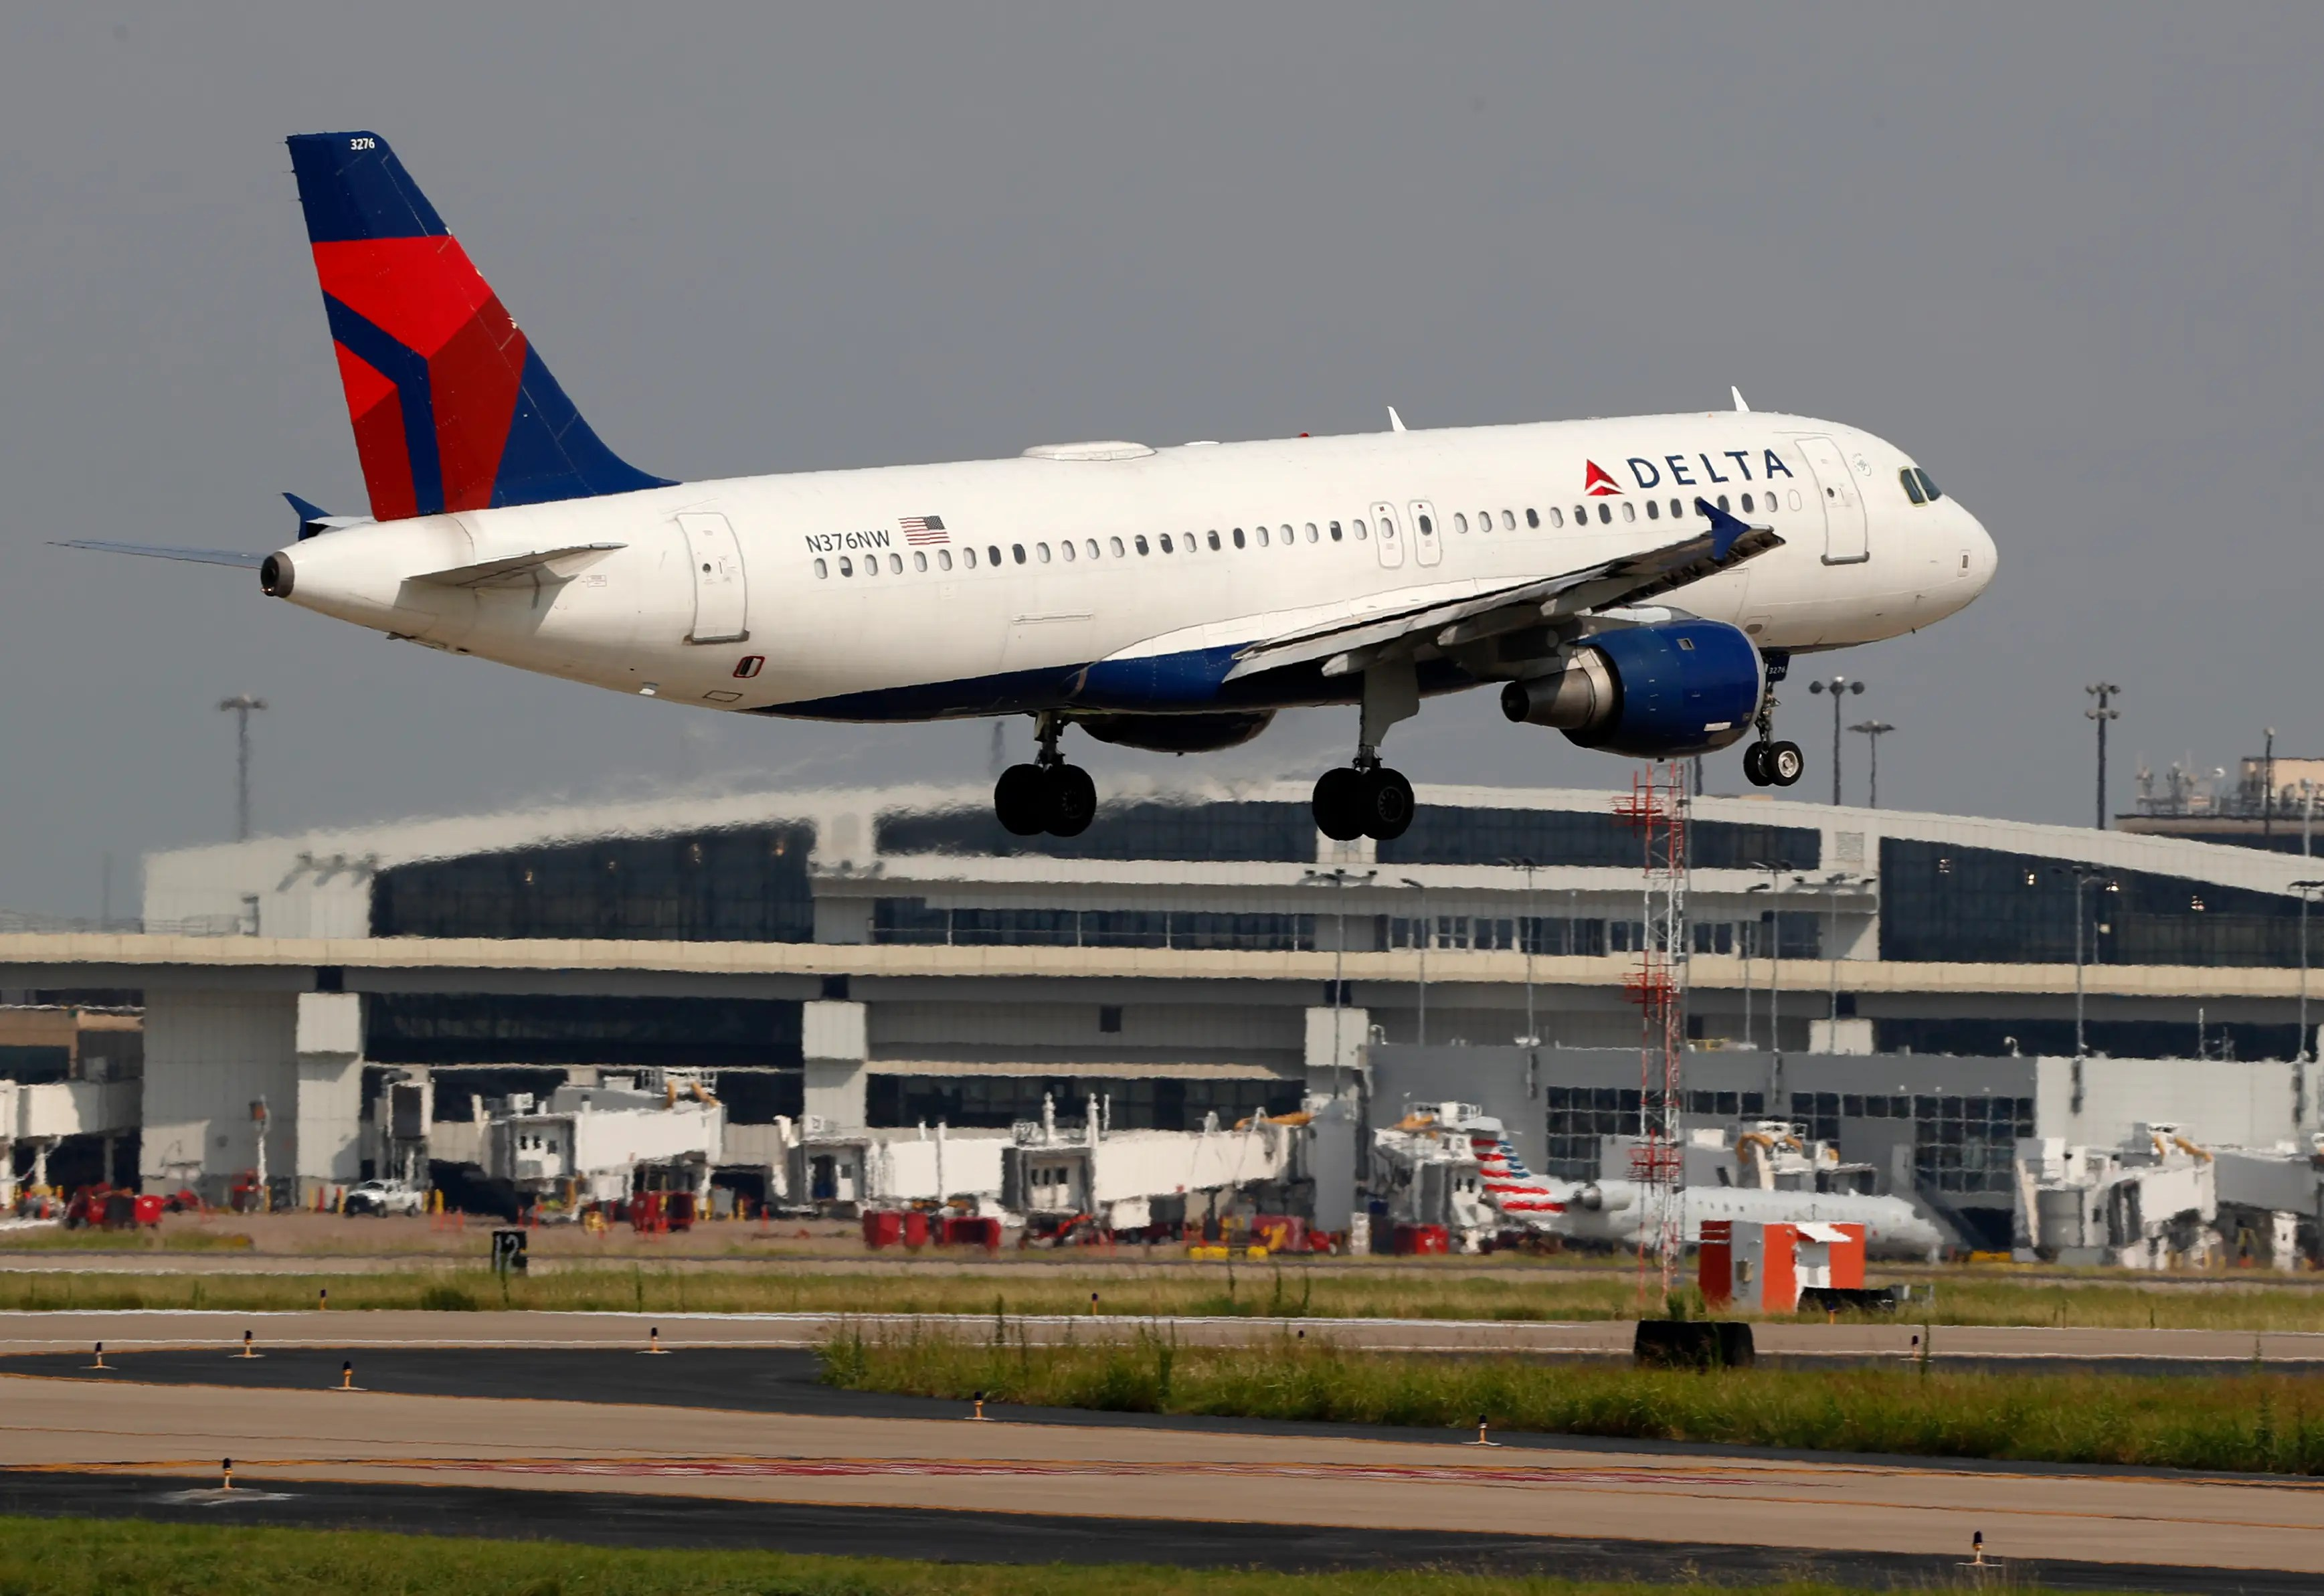 Coronavirus flight suspensions: Delta, American, United - Business ...